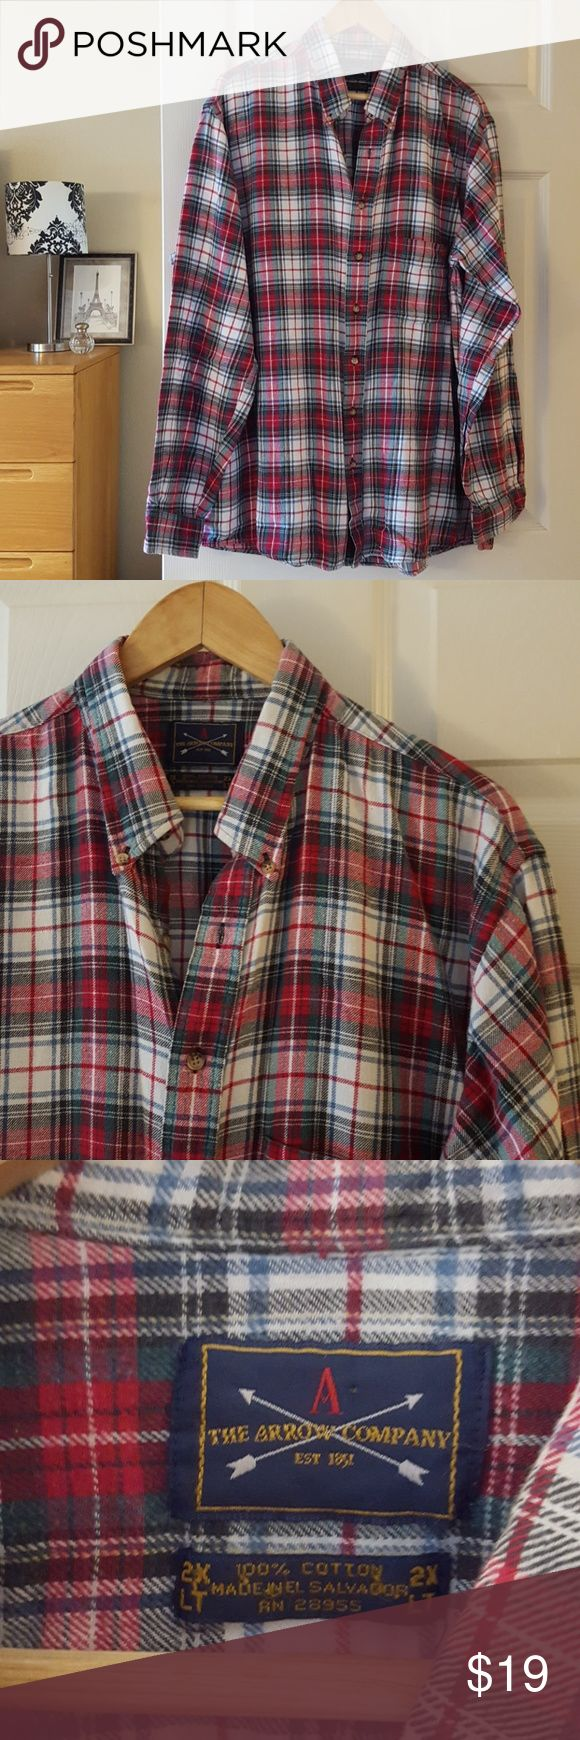 """plaid flannel mens shirt red, green, white size 2X Measurements lying flat:  Chest: 27"""" Length:31"""" 100% cotton  -Smoke-free home  -Reasonable offers welcome, but prices are firm on items under $10.  -No trades, please.  -All measurements are approximate.  💕💕💕Thank you for shopping my closet, it means a lot to me!💕💕💕 The Arrow Company Shirts Casual Button Down Shirts"""